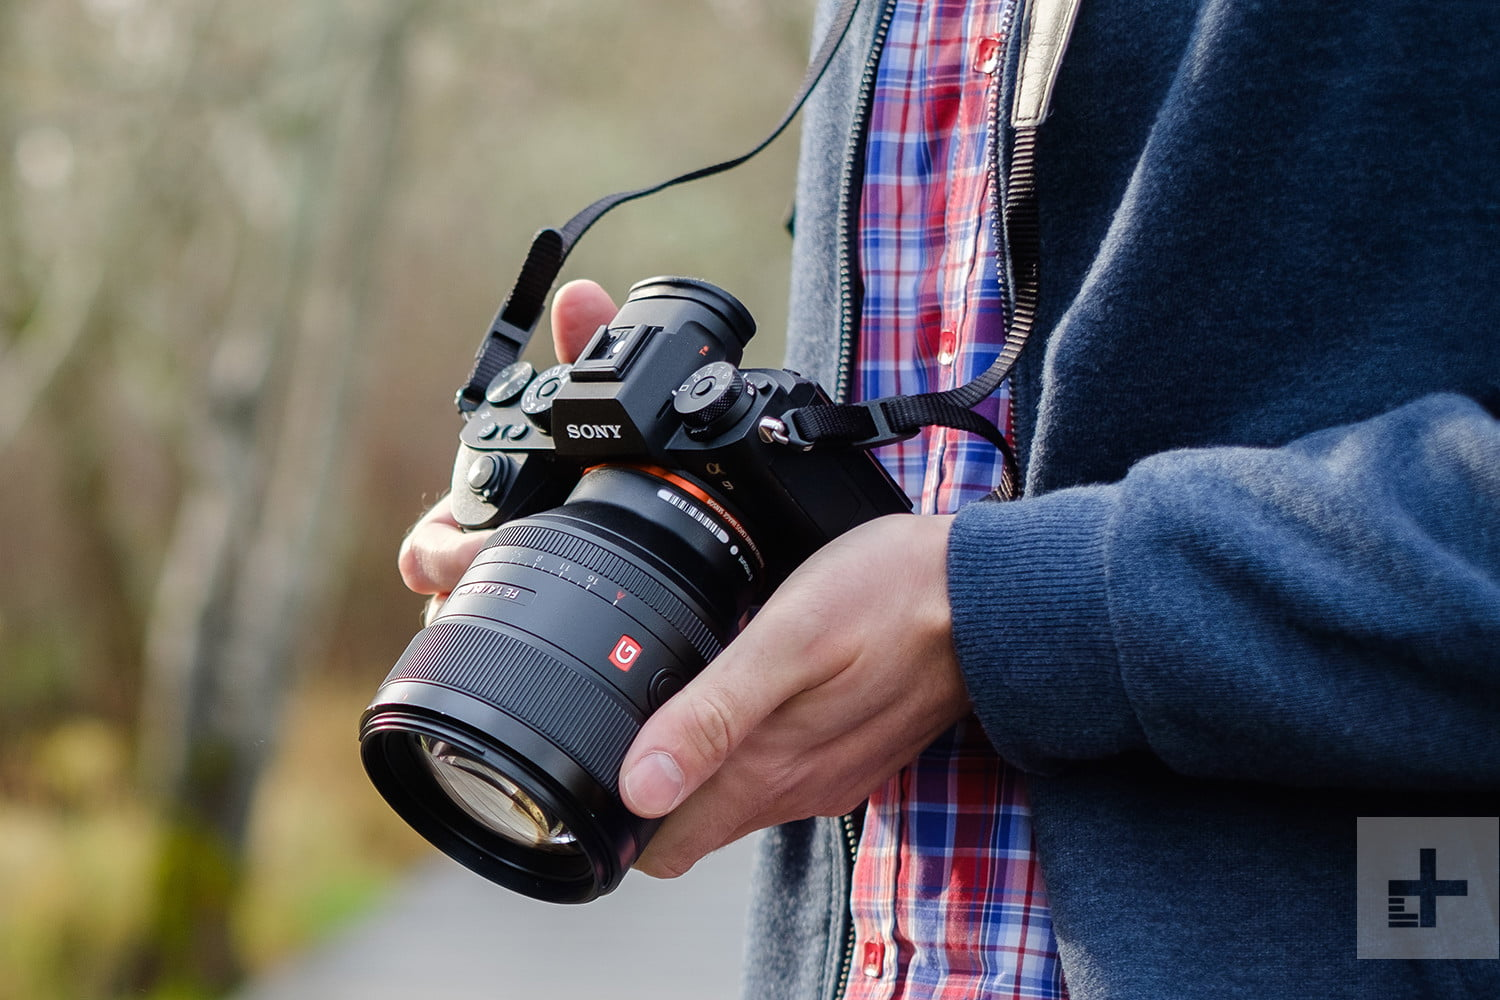 How To Choose A Camera The Ultimate Guide To Buying The Right Gear Digital Trends